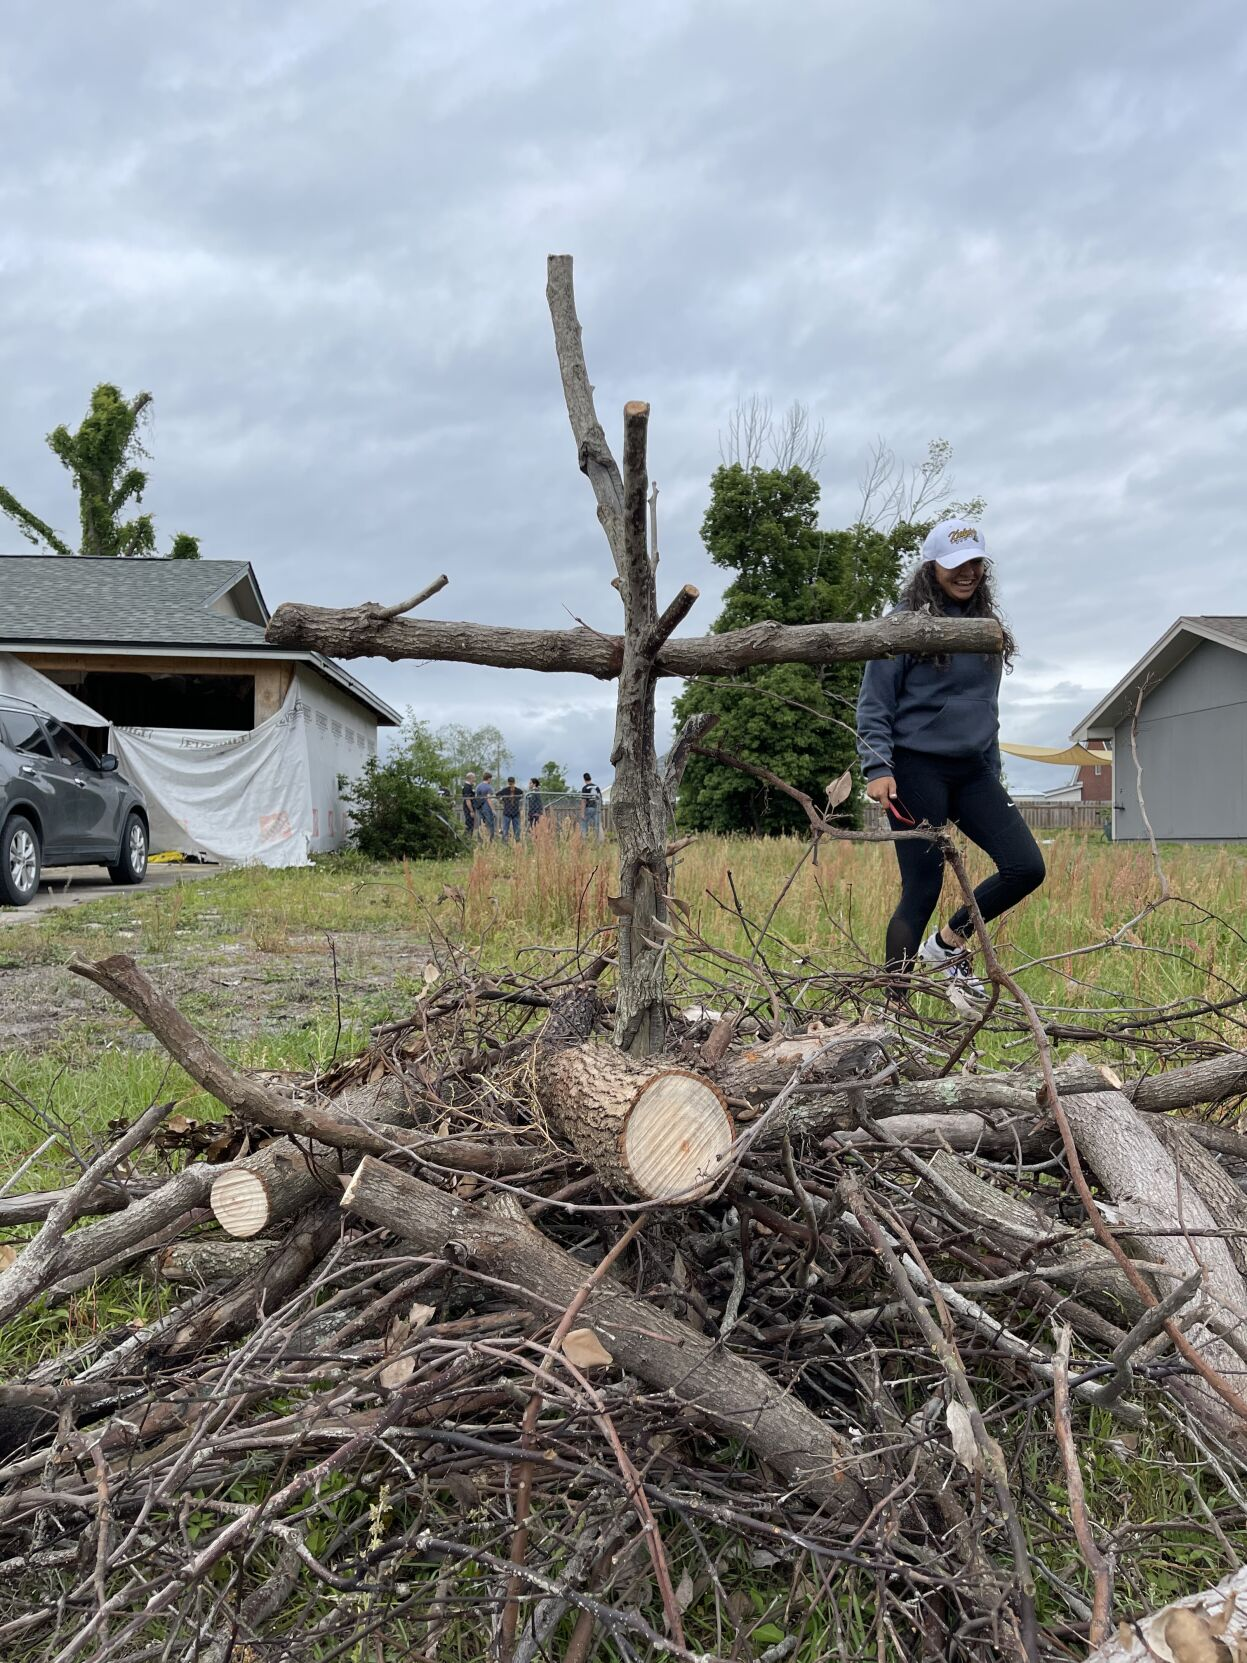 Students from UCF Catholic Campus Ministry spend their Spring Break helping others by cleaning up existing debris from Hurricane Michael and recent tornadoes in Panama City, April 11-217. (COURTESY)